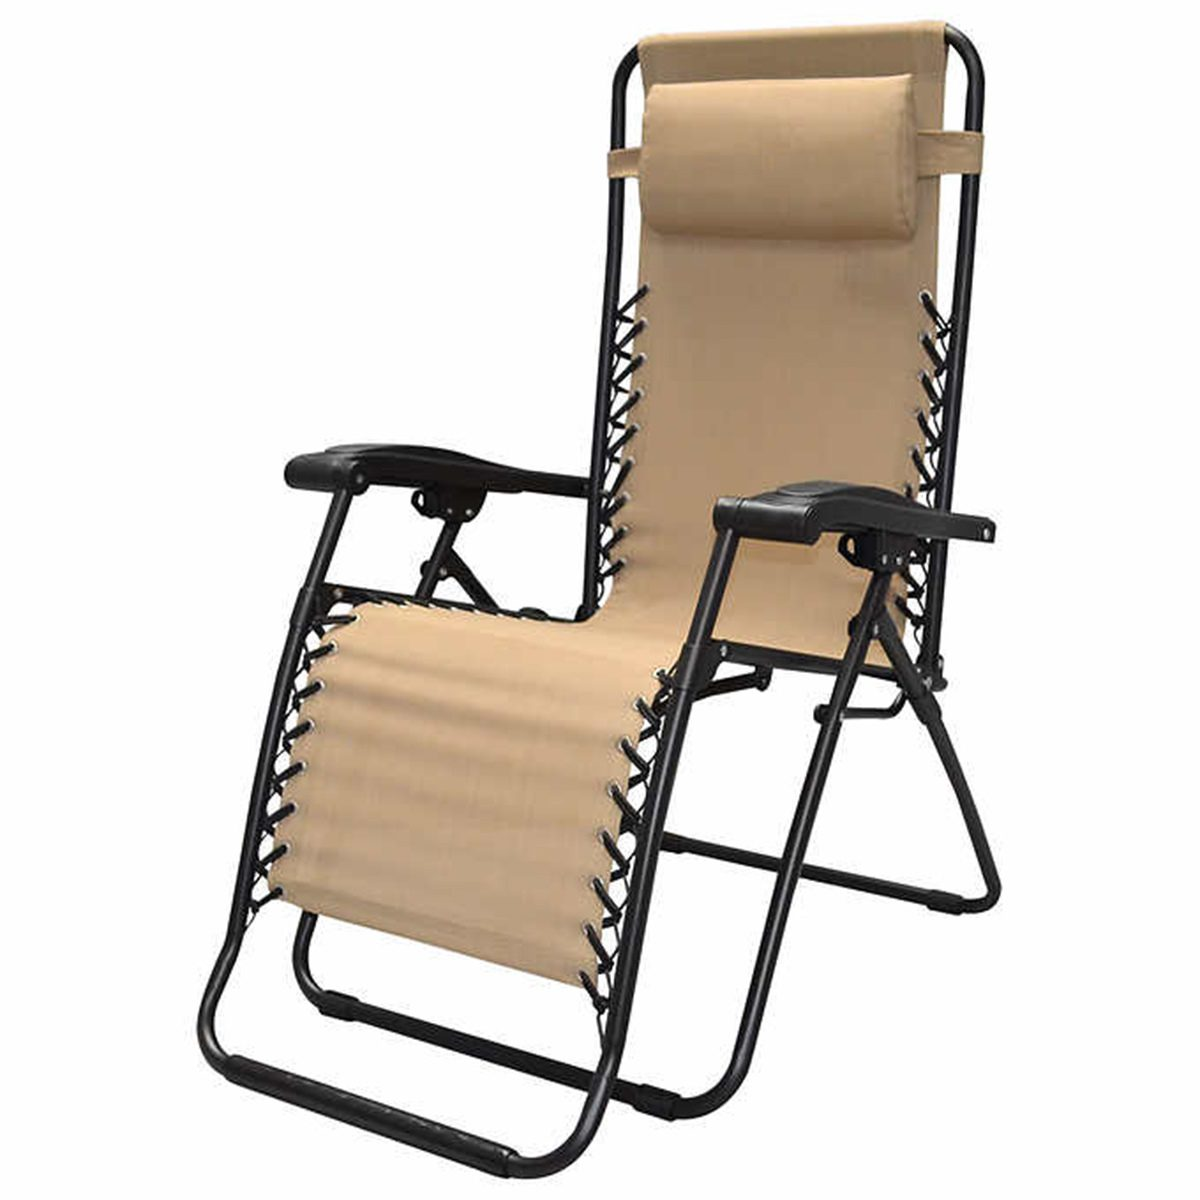 Costco Outdoor Chairs You 39ll Be Glad You Bought These 15 Things At Costco